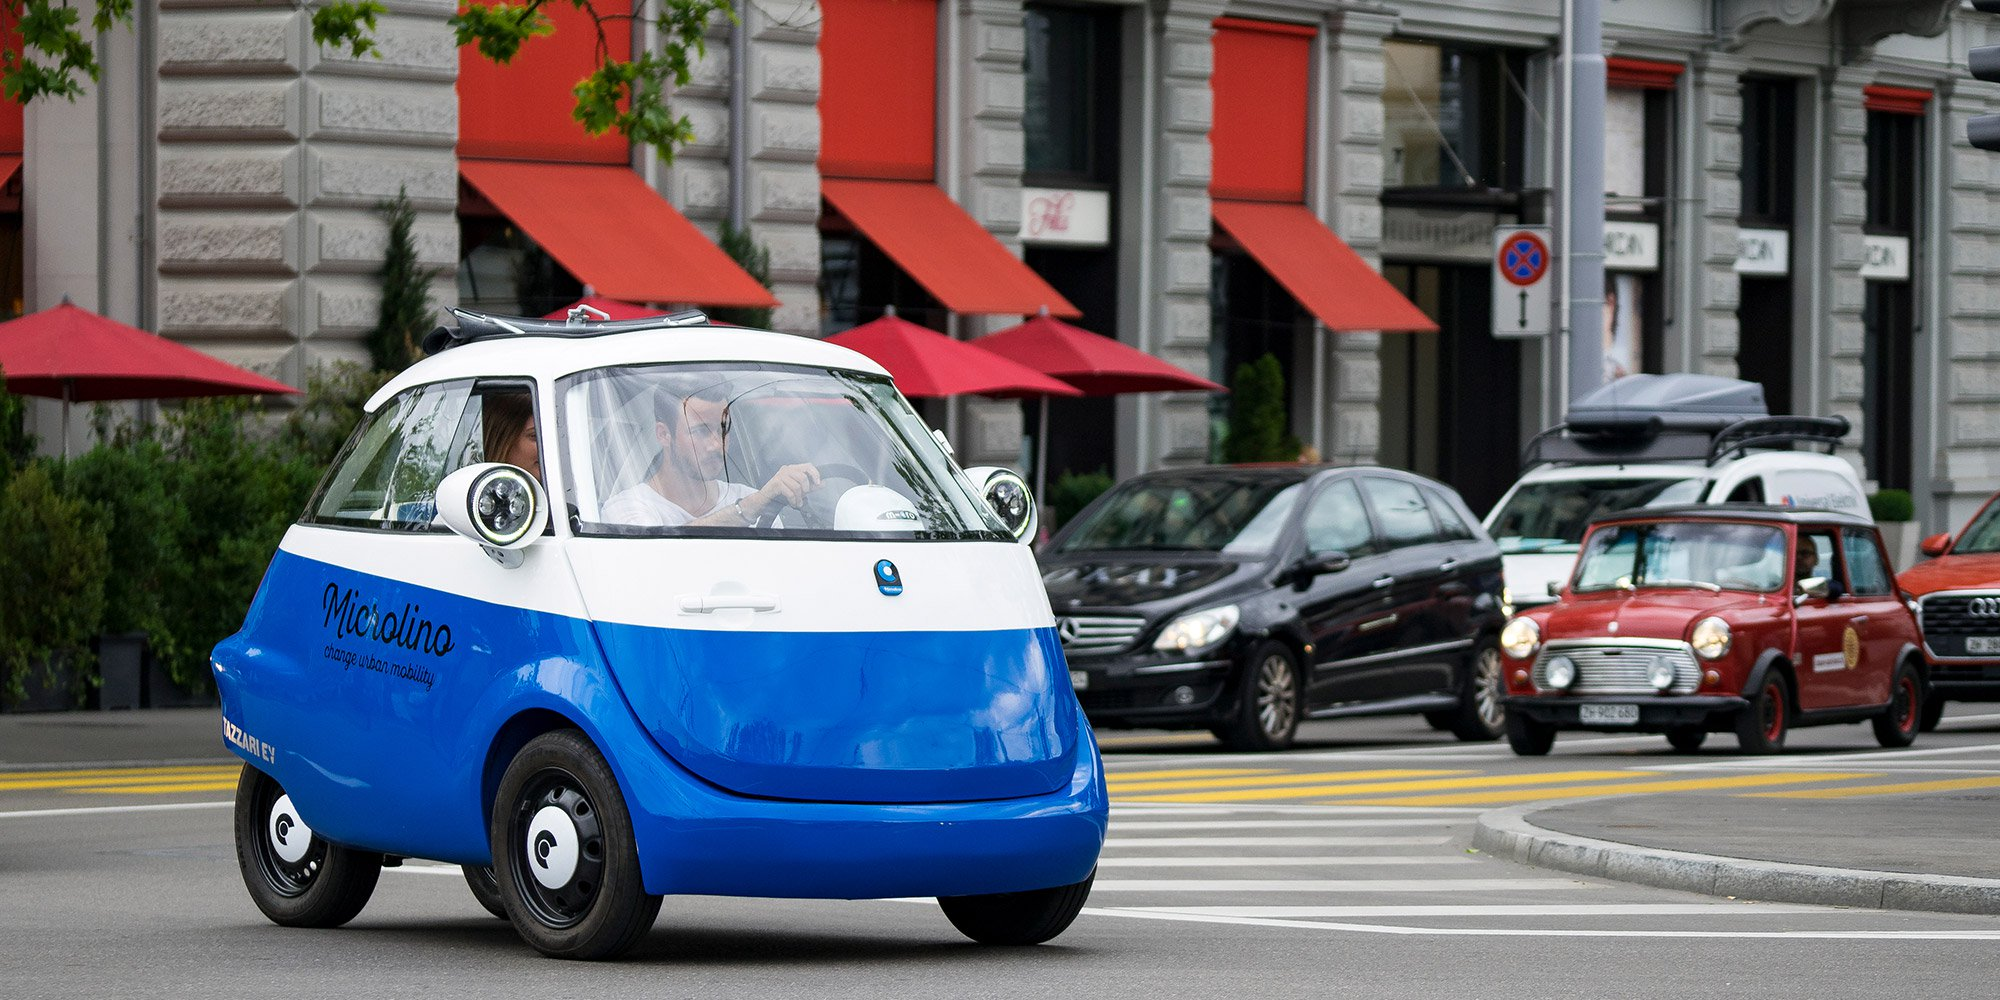 The Isetta-style Microlino electric bubble car surpasses 8,000 pre-orders